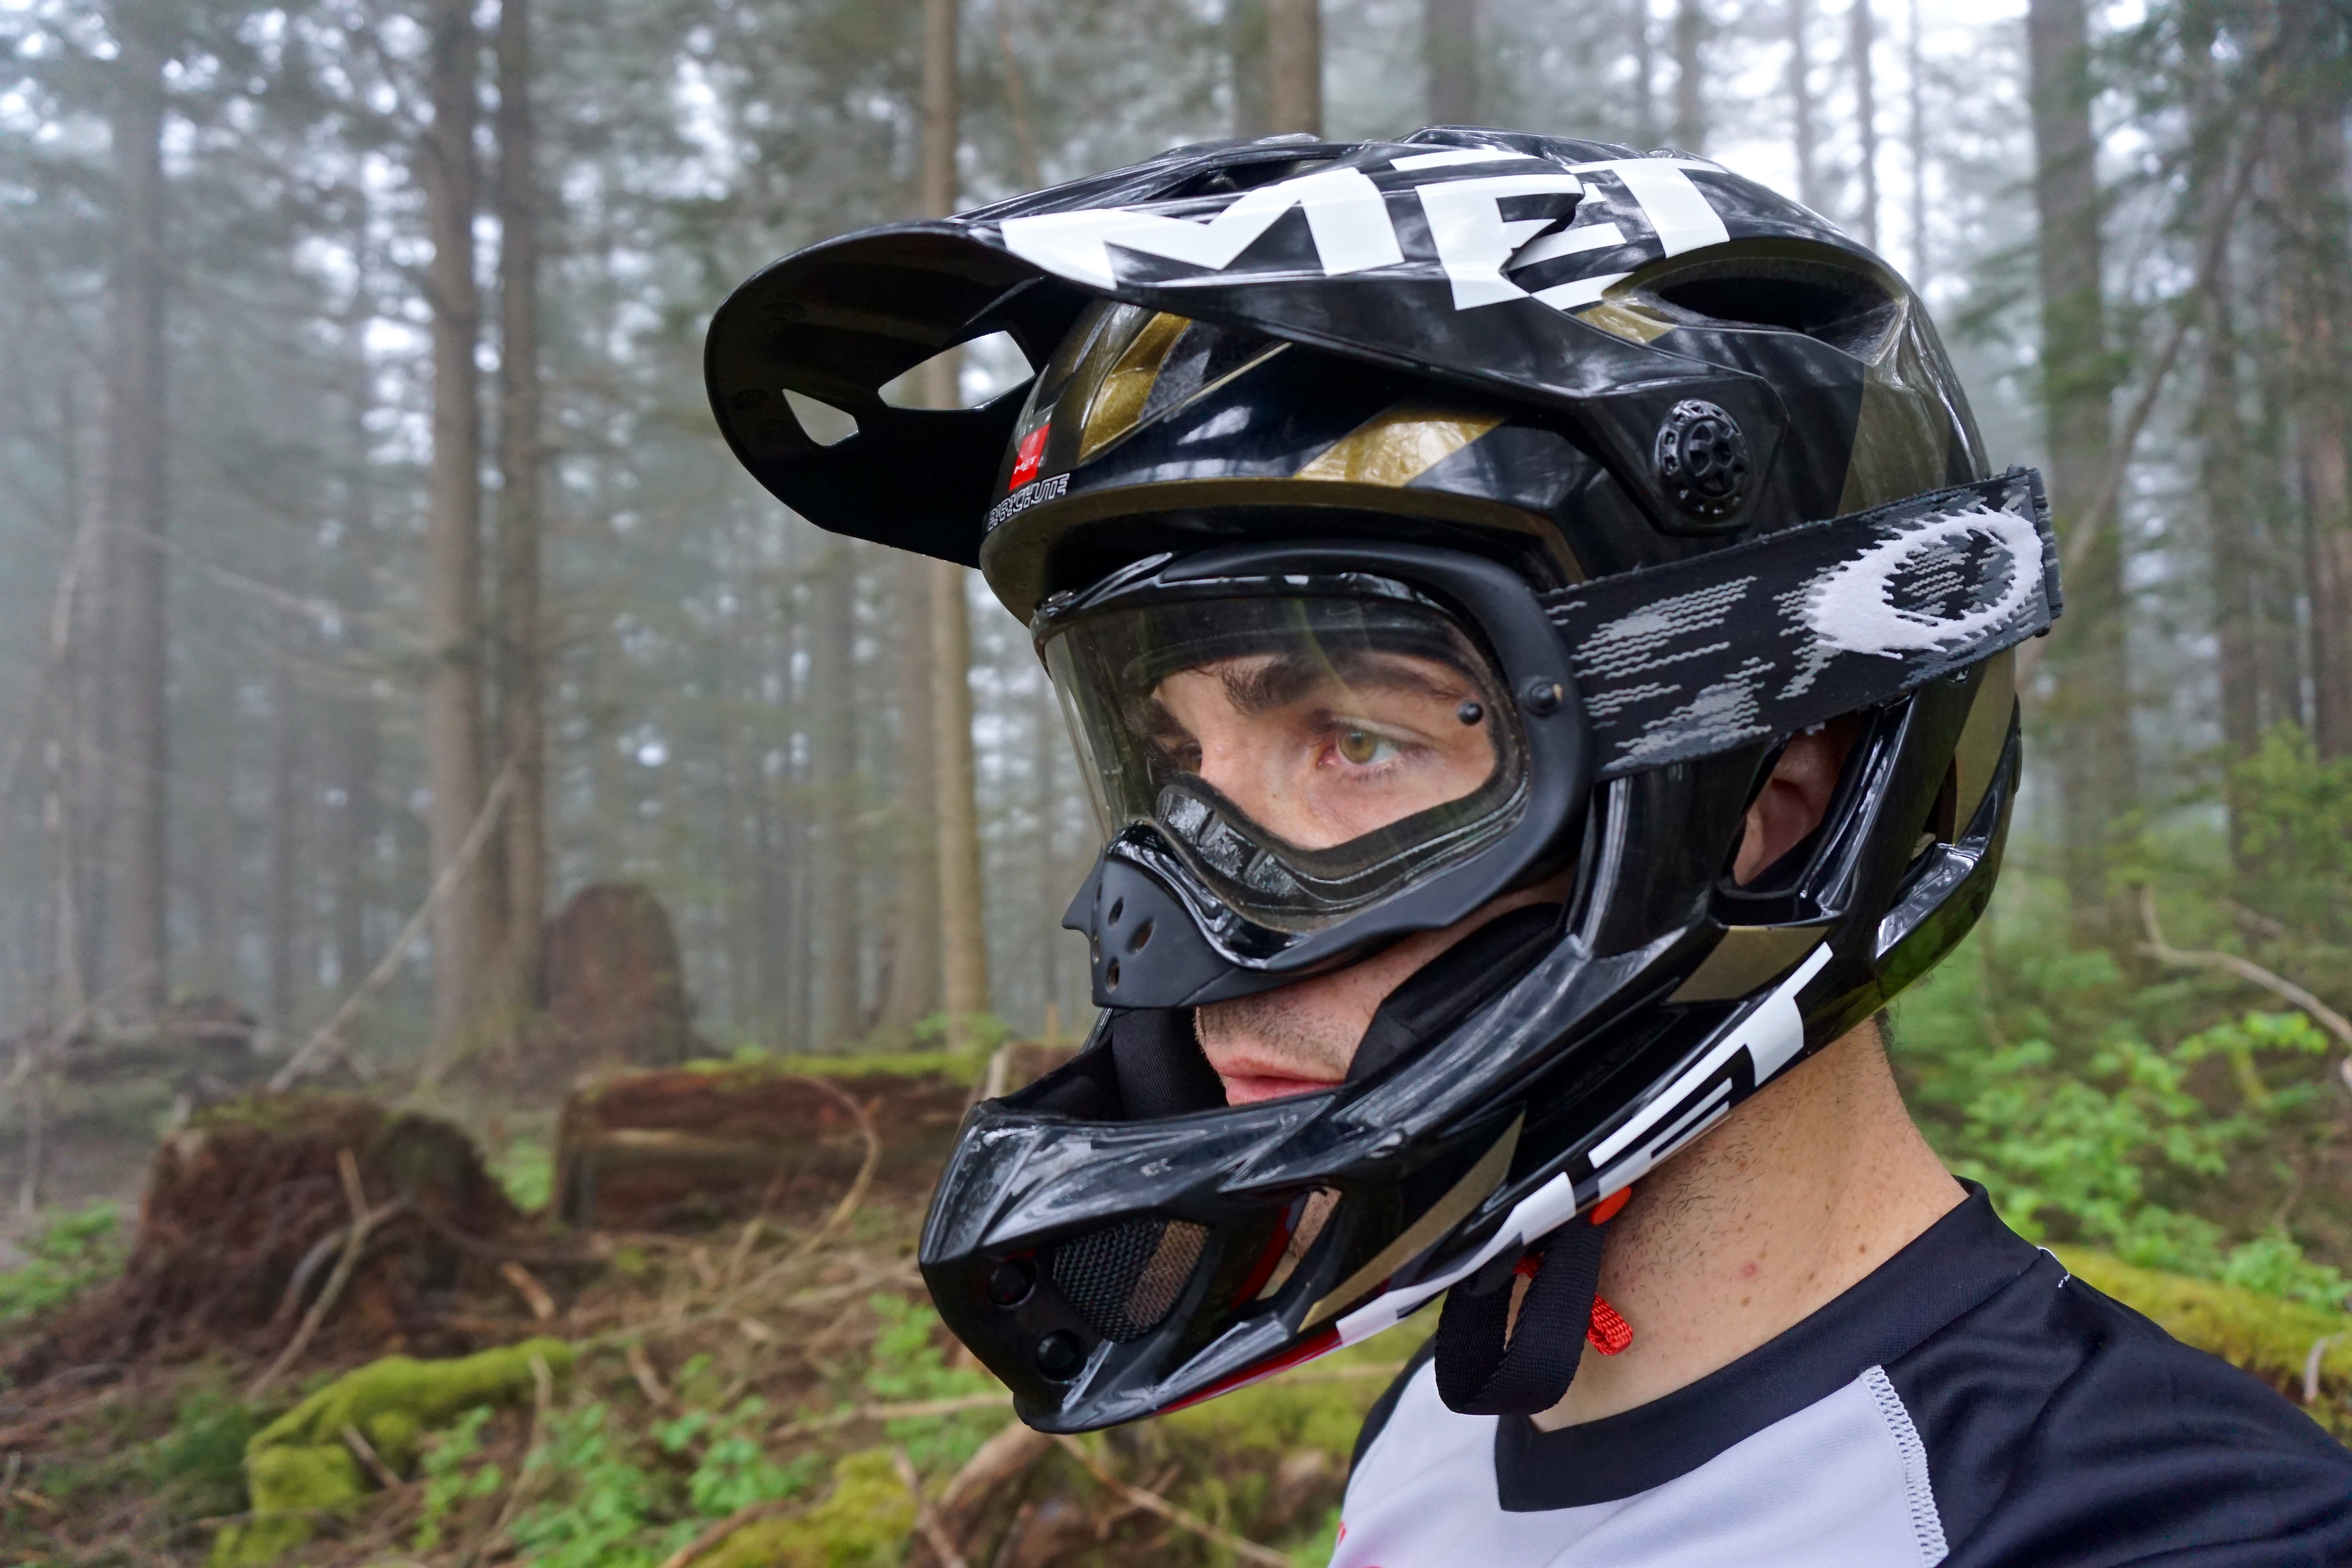 The Lightest Full Face Helmet In The World Met Parachute Review